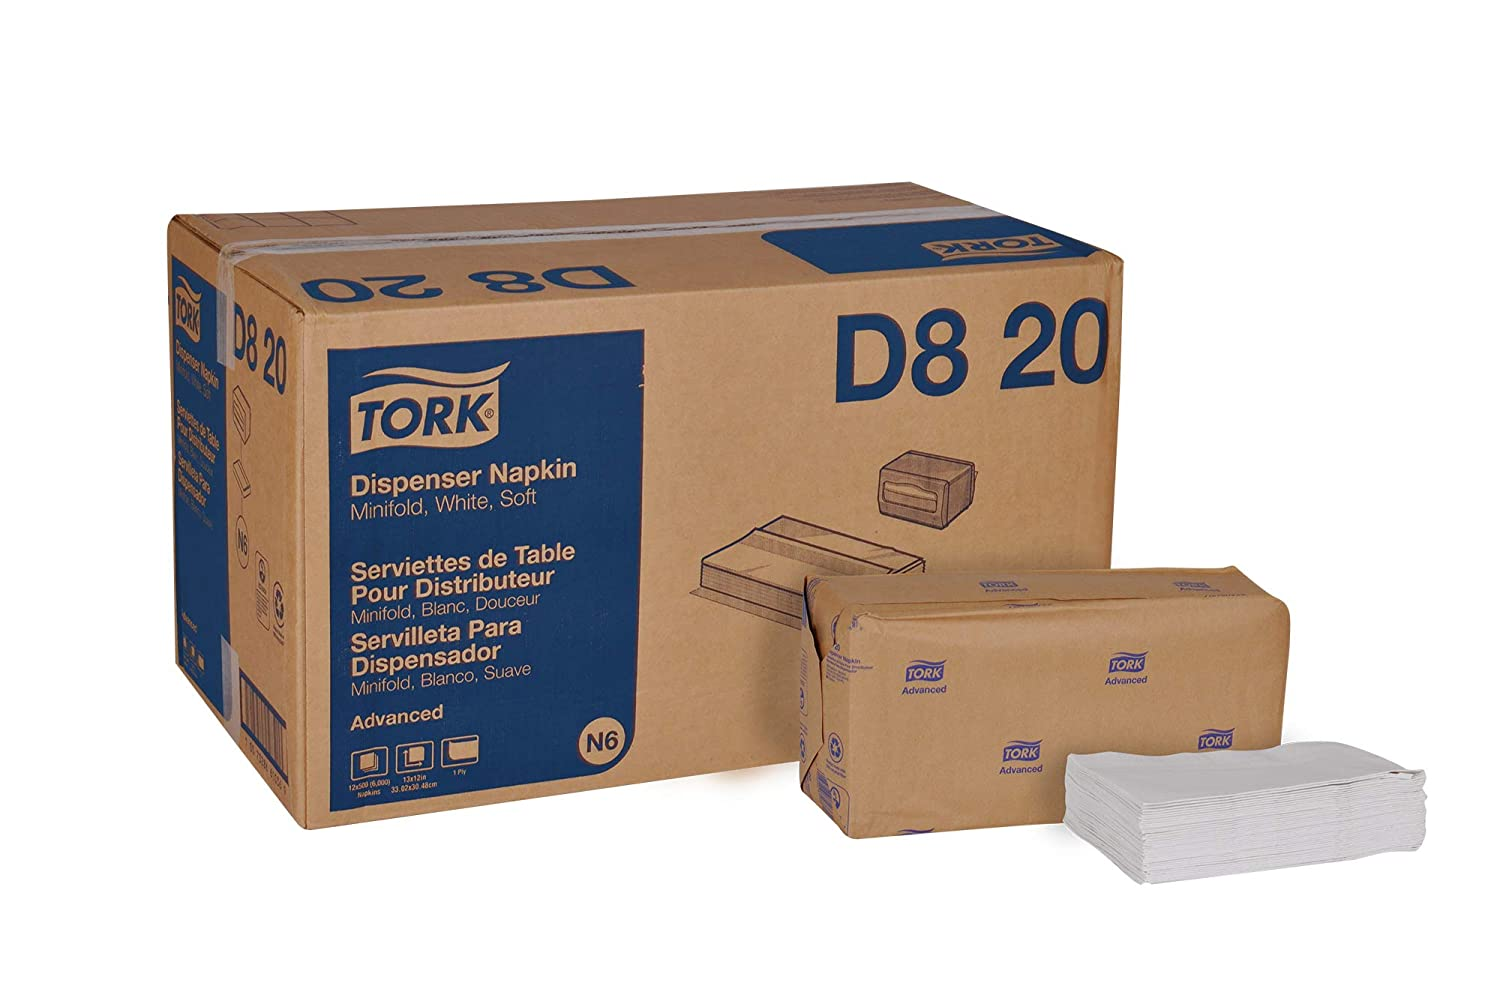 Amazon.com: Tork Advanced Soft D820 Minifold Dispenser Napkin, 1-Ply, 13